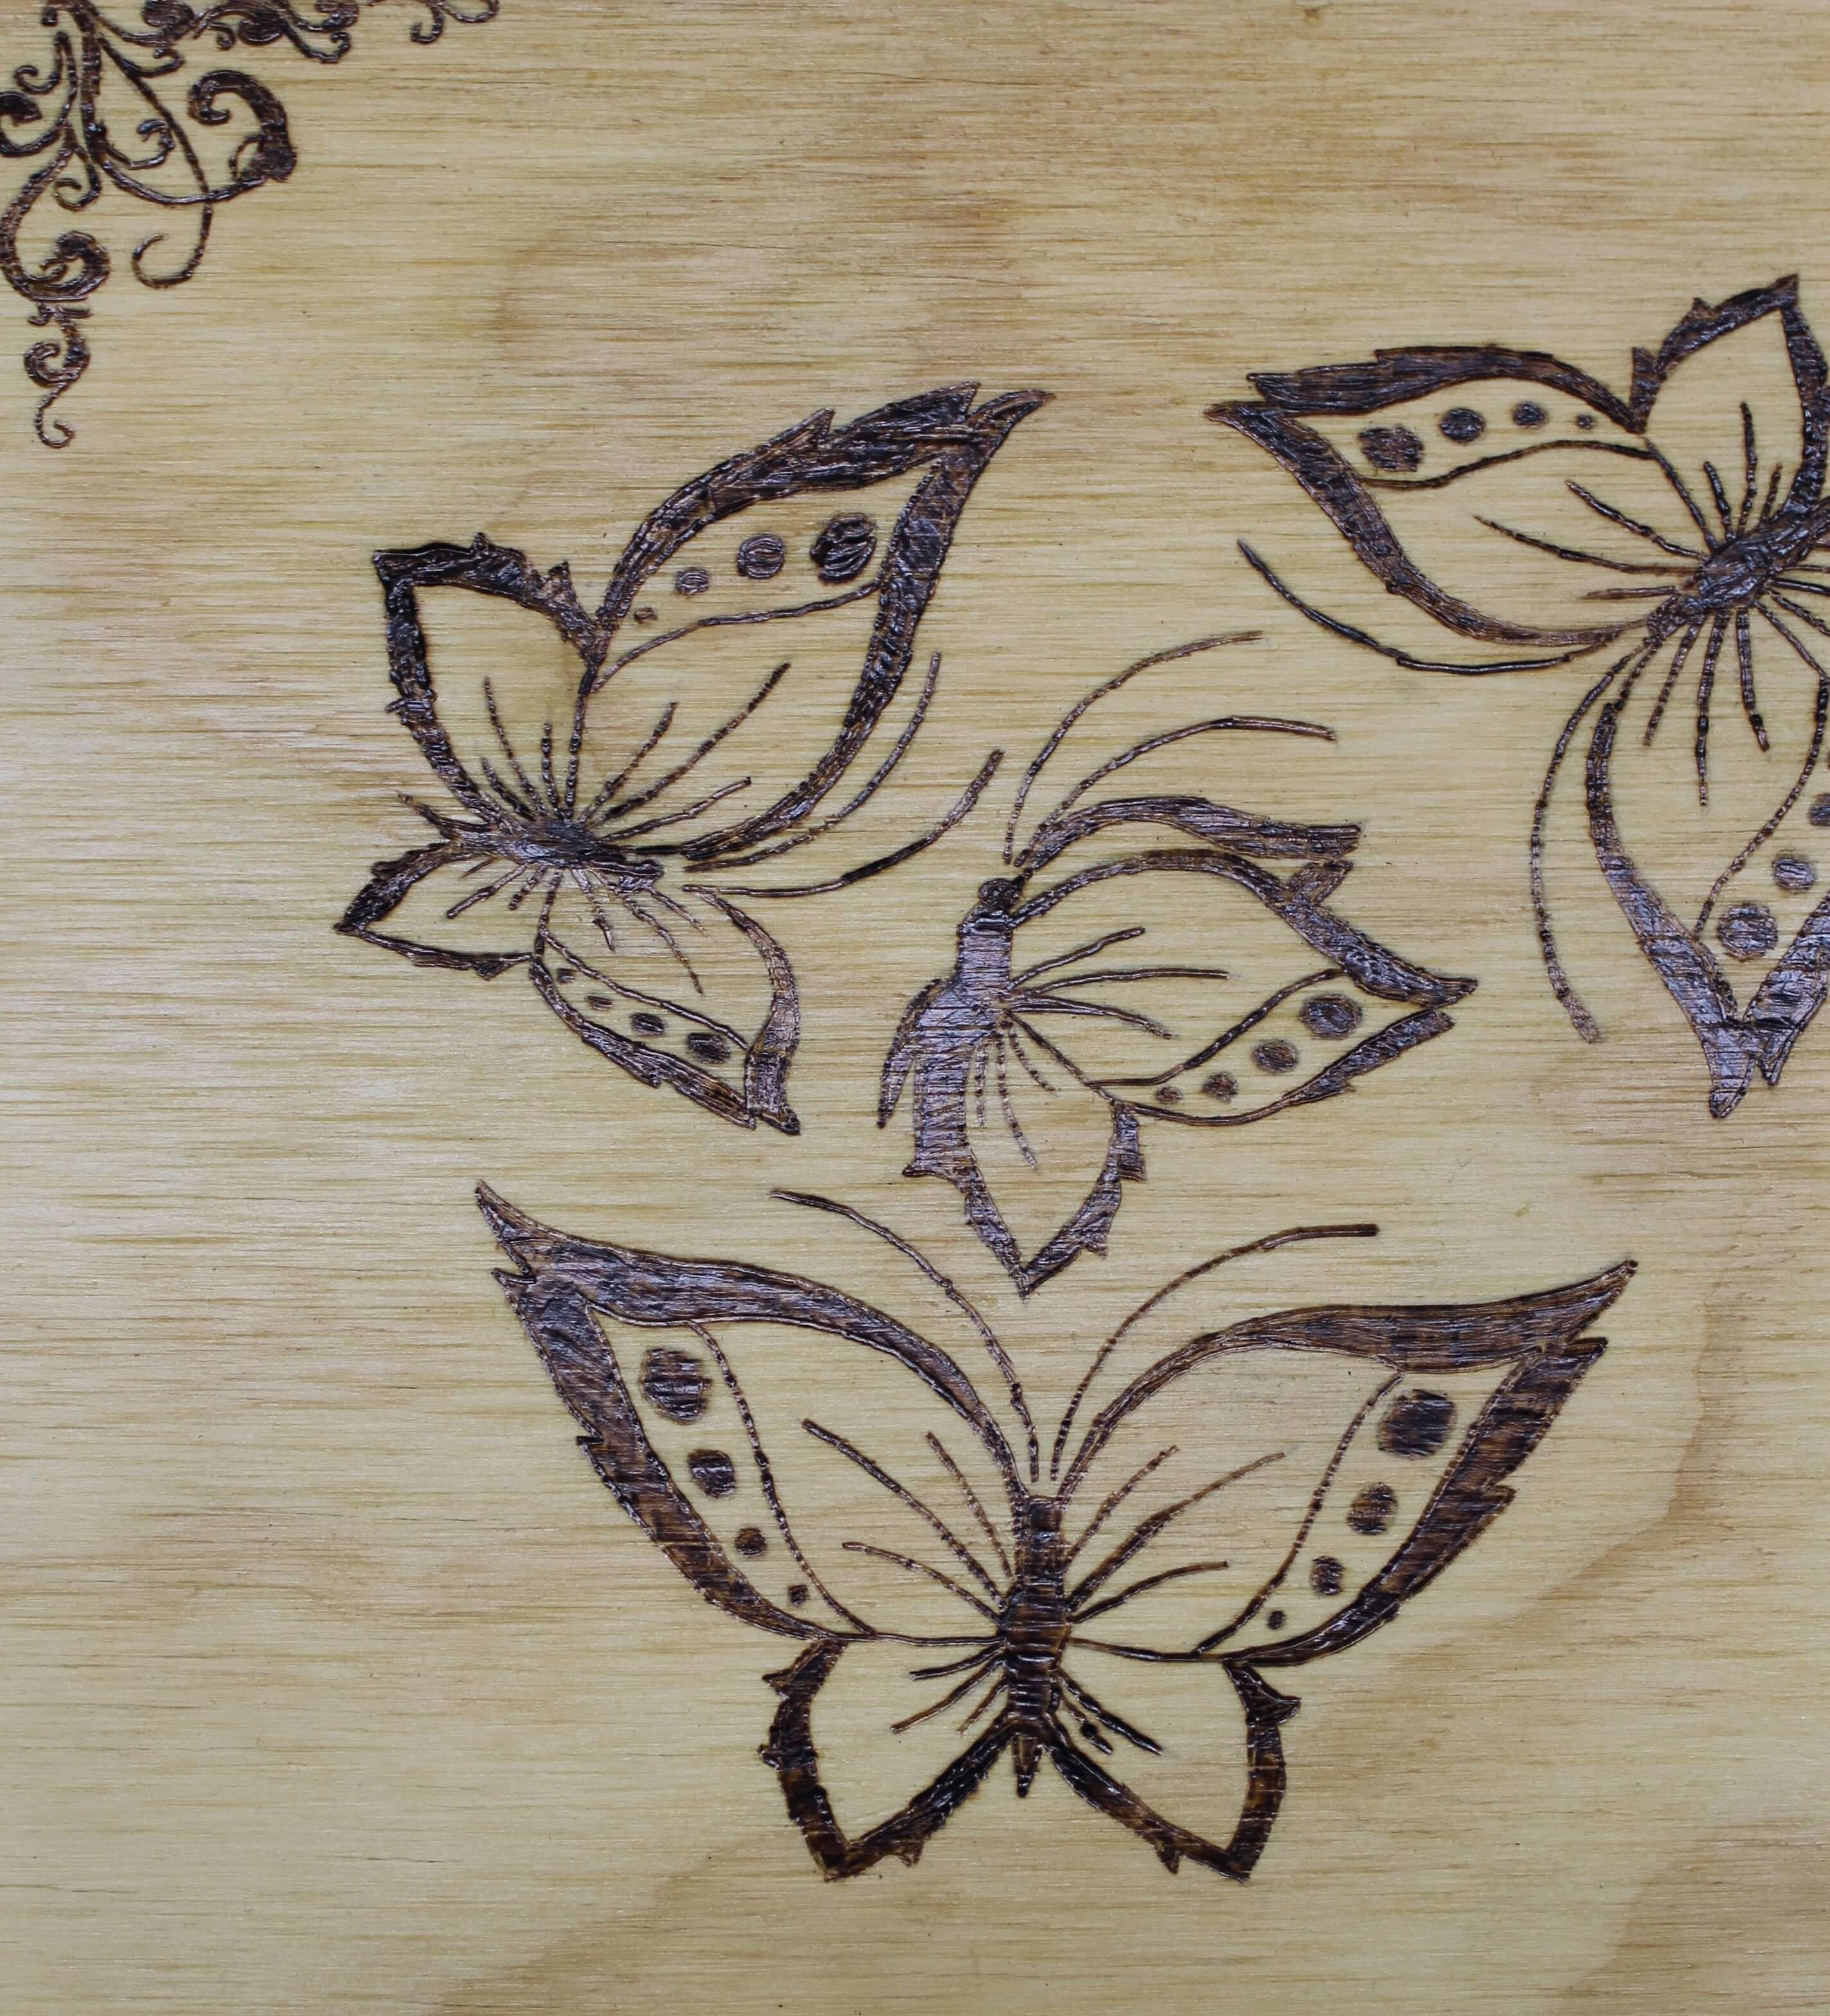 20 Free Printable Wood Burning Patterns For Beginners | Wood Burning - Free Printable Pyrography Patterns